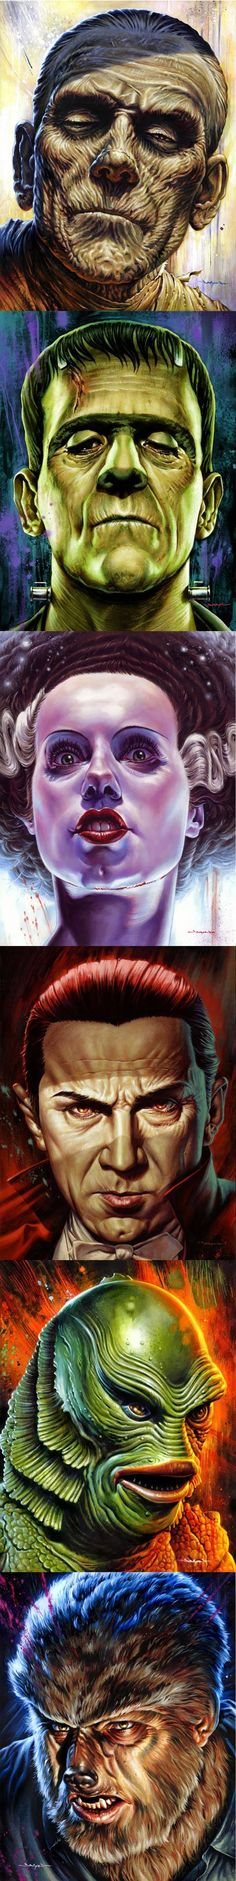 "~ Jason Edmiston's Incredible ""Monsters"" Series Paintings Of The Classic Horror Movies We Luv. Mary Shelley Frankenstein, Bride Of Frankenstein, Beetlejuice, Jason Edmiston, Horror Monsters, Horror Icons, Famous Monsters, Classic Horror Movies, Classic Monsters"